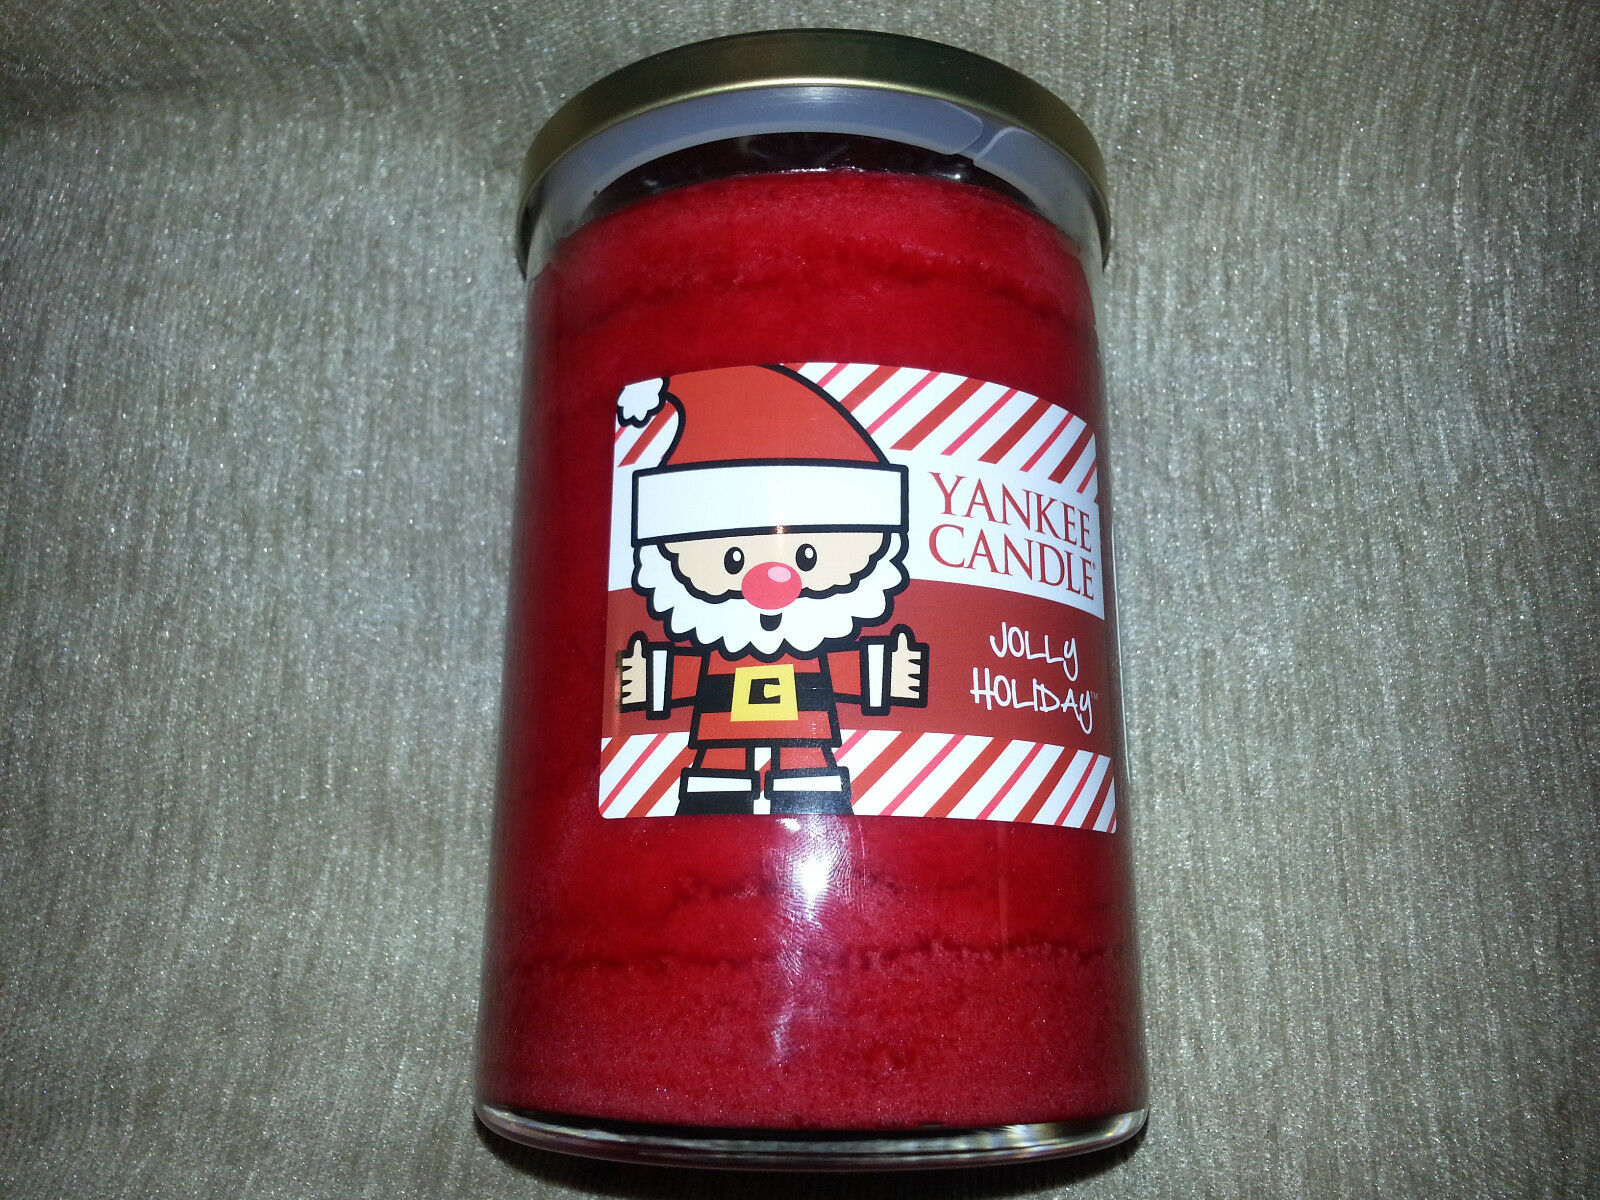 YANKEE CANDLE Large 20 oz Glass Jar Tumbler JOLLY HOLIDAY Red CHRISTMAS CHERRY